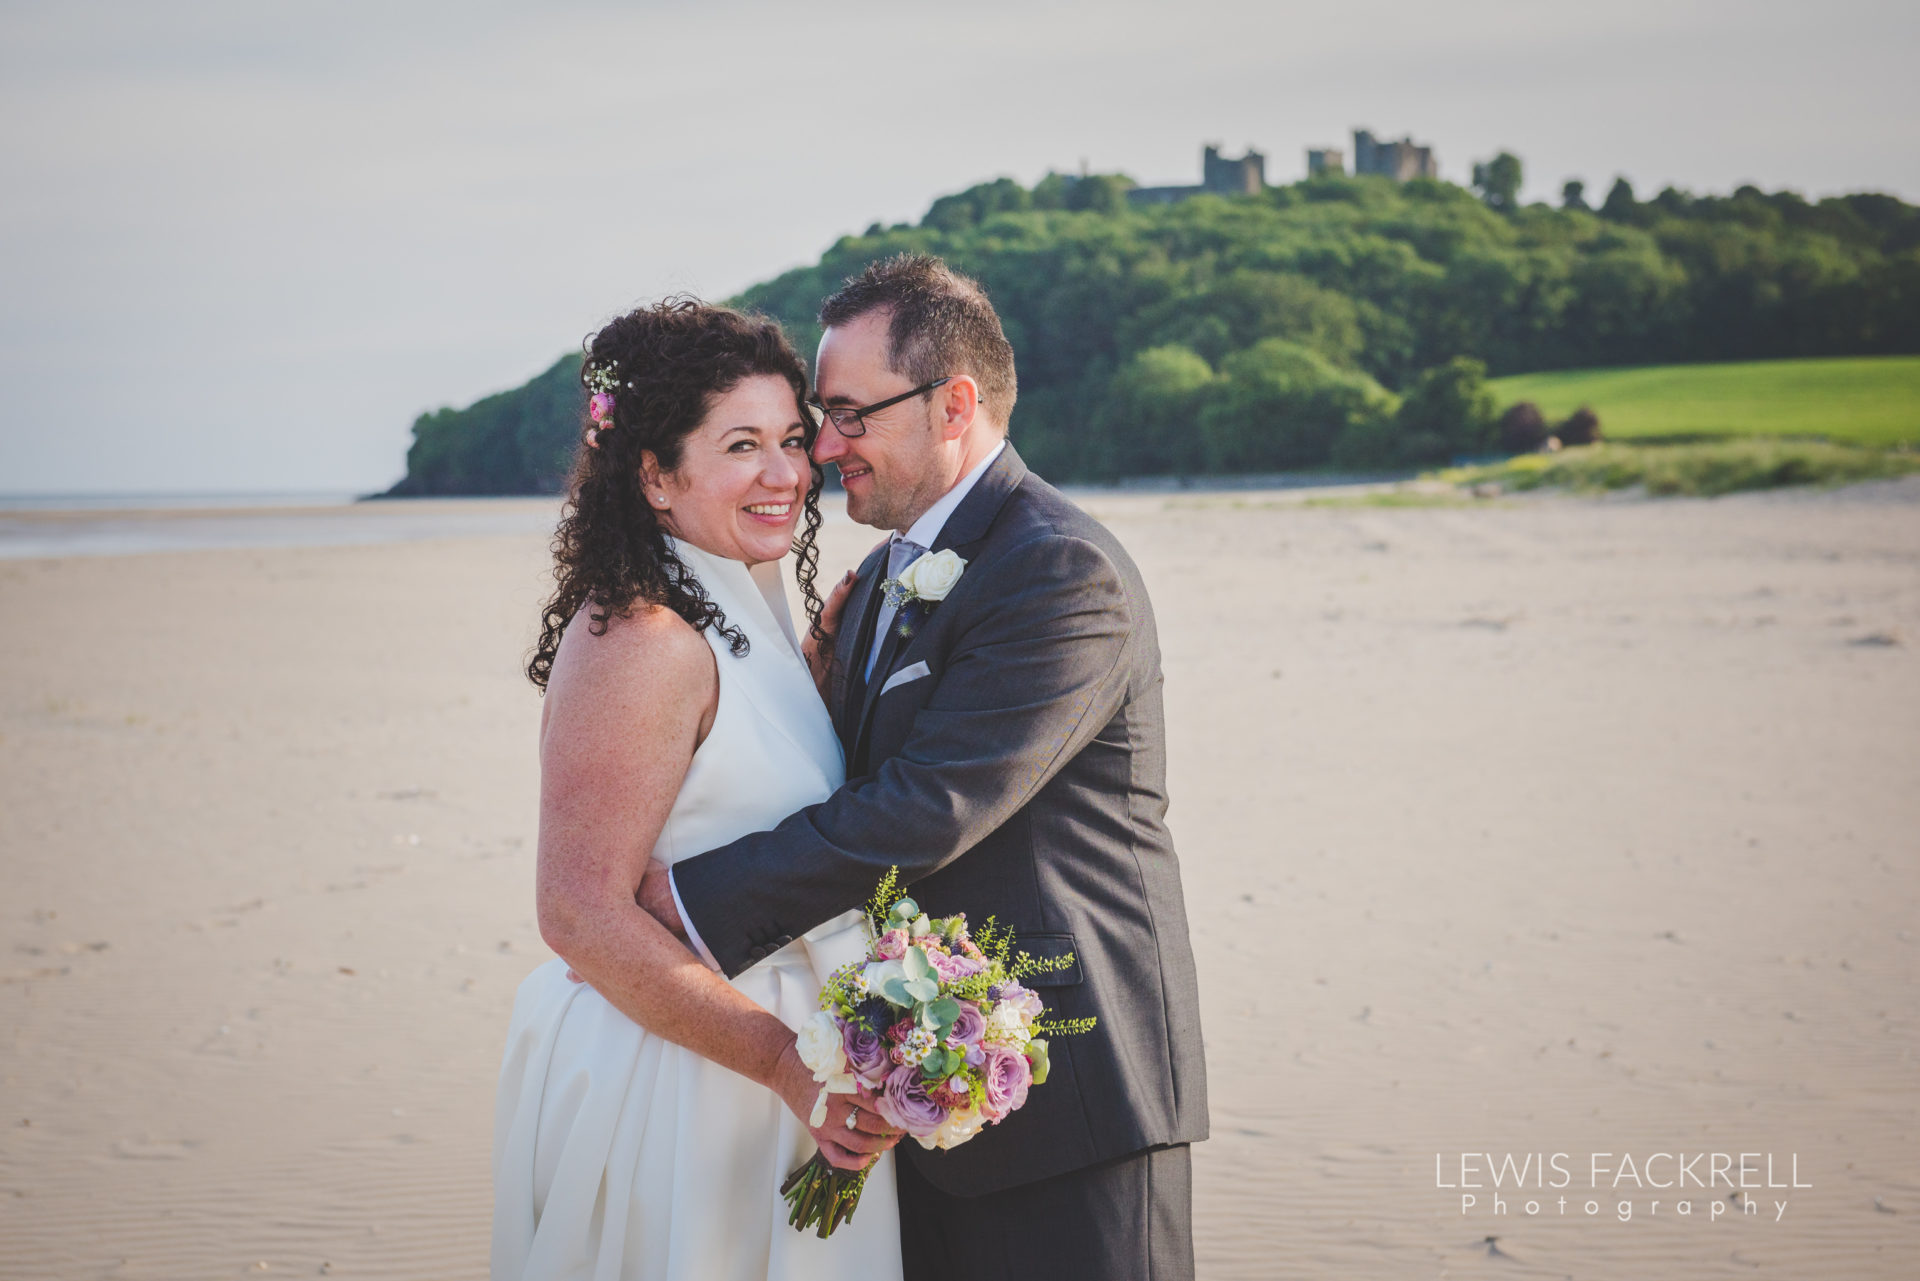 Lewis-Fackrell-Photography-Wedding-Photographer-Cardiff-Swansea-Bristol-Newport-Pre-wedding-photoshoot-Rhian-Mark-Mansion-House-Llansteffan-Carmarthenshire--115